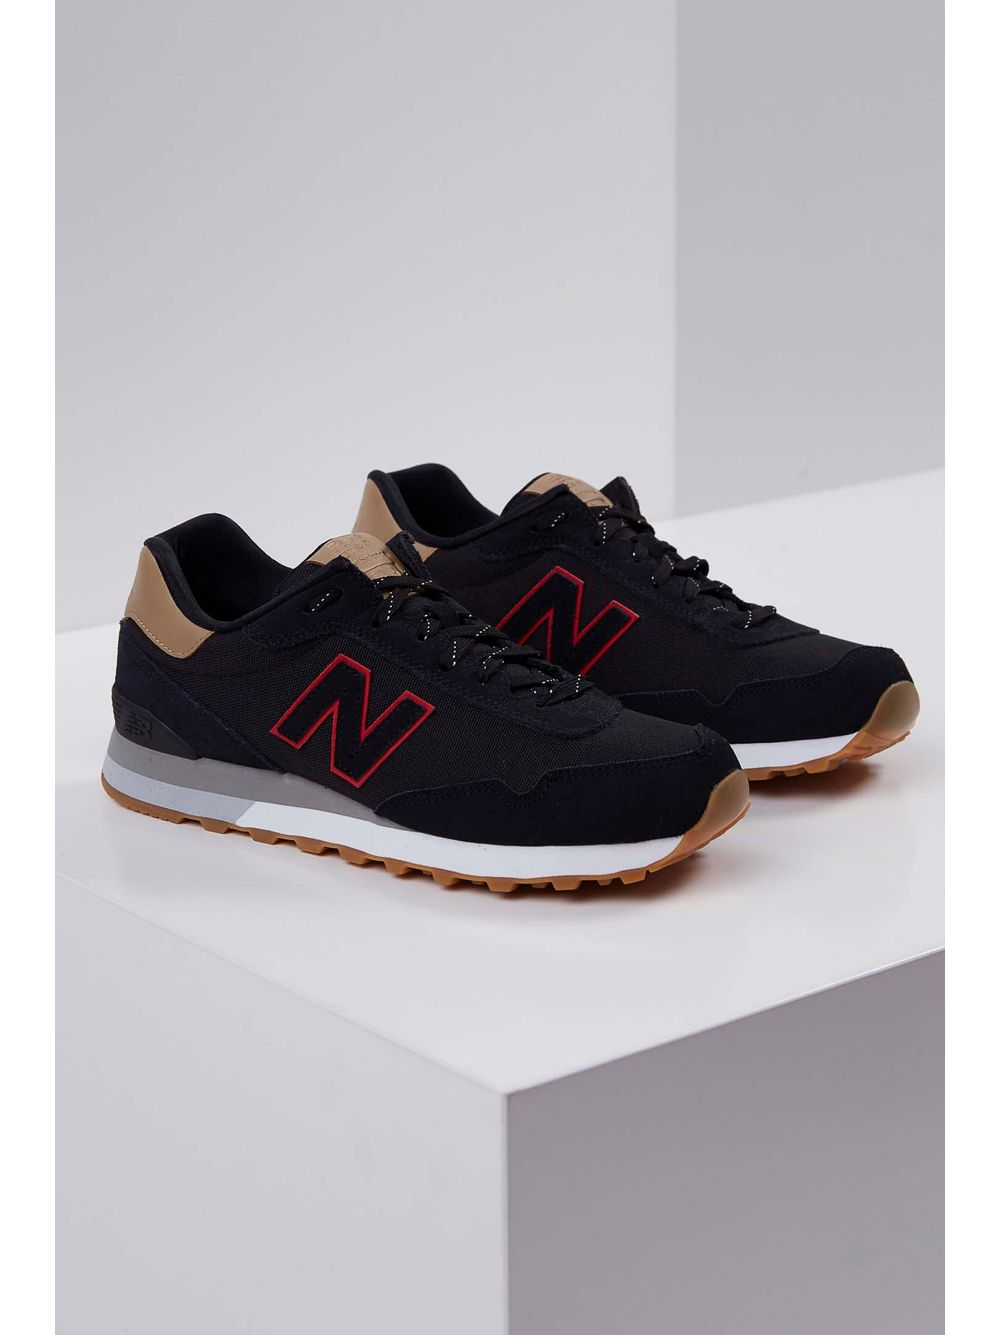 d5f0a0fba3 Tênis New Balance Ml515rfc Preto - pittol